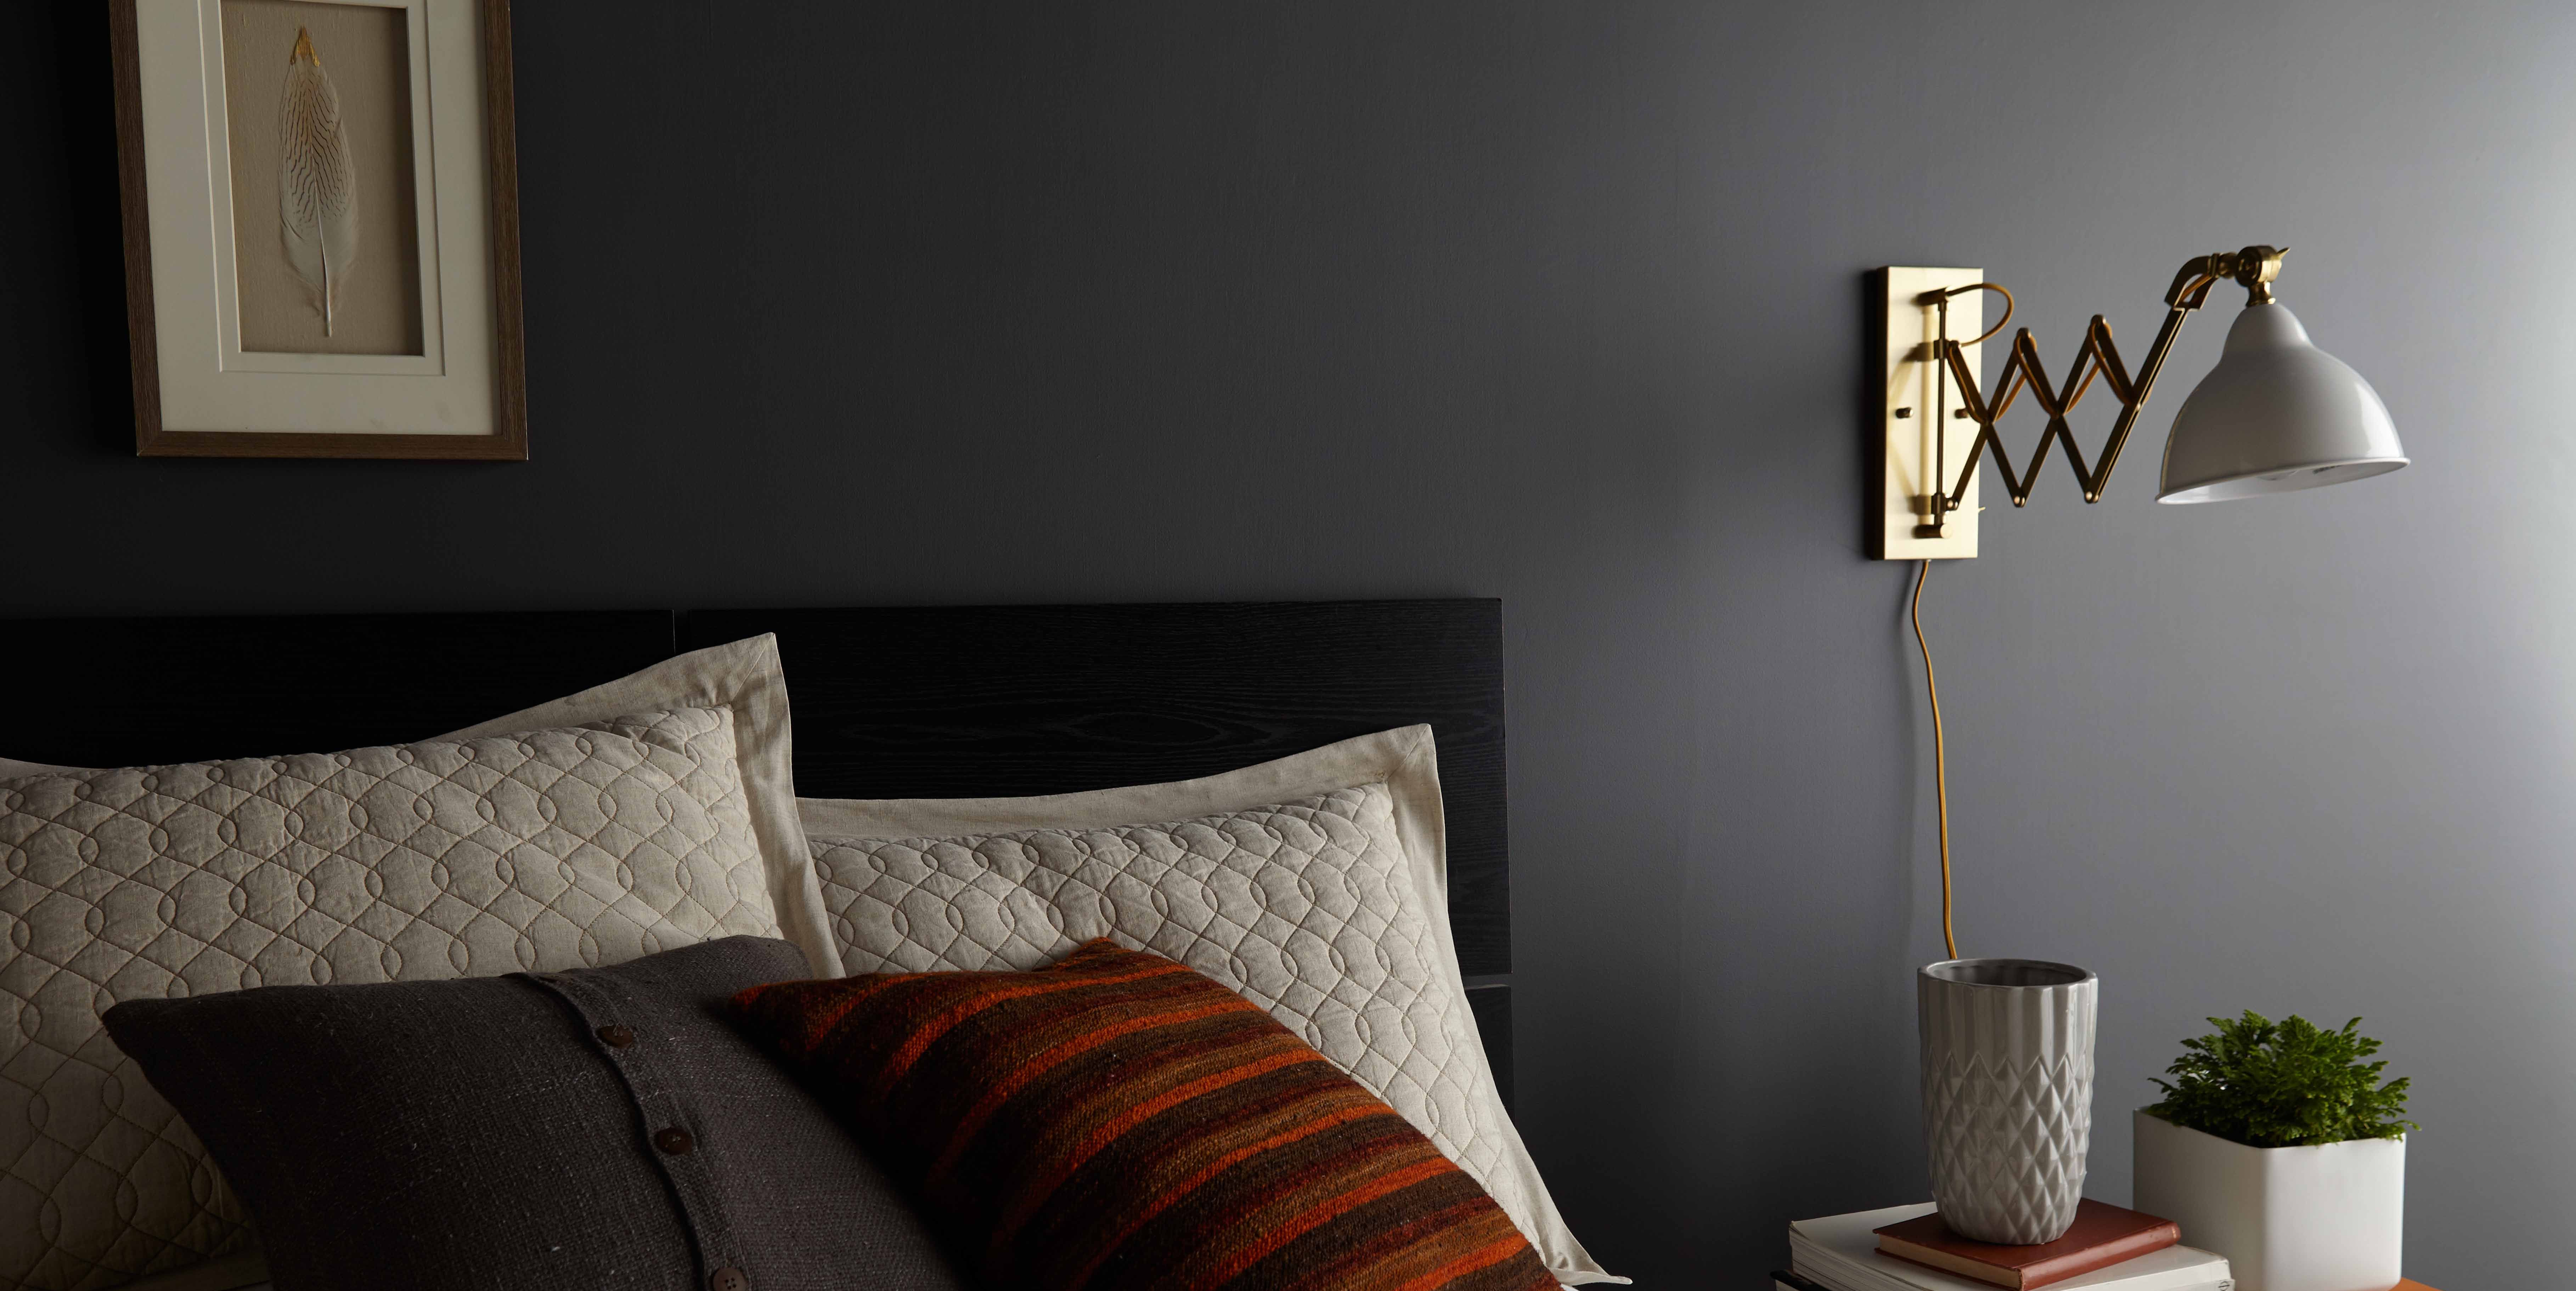 New Paint Colors For Bedroom 2020